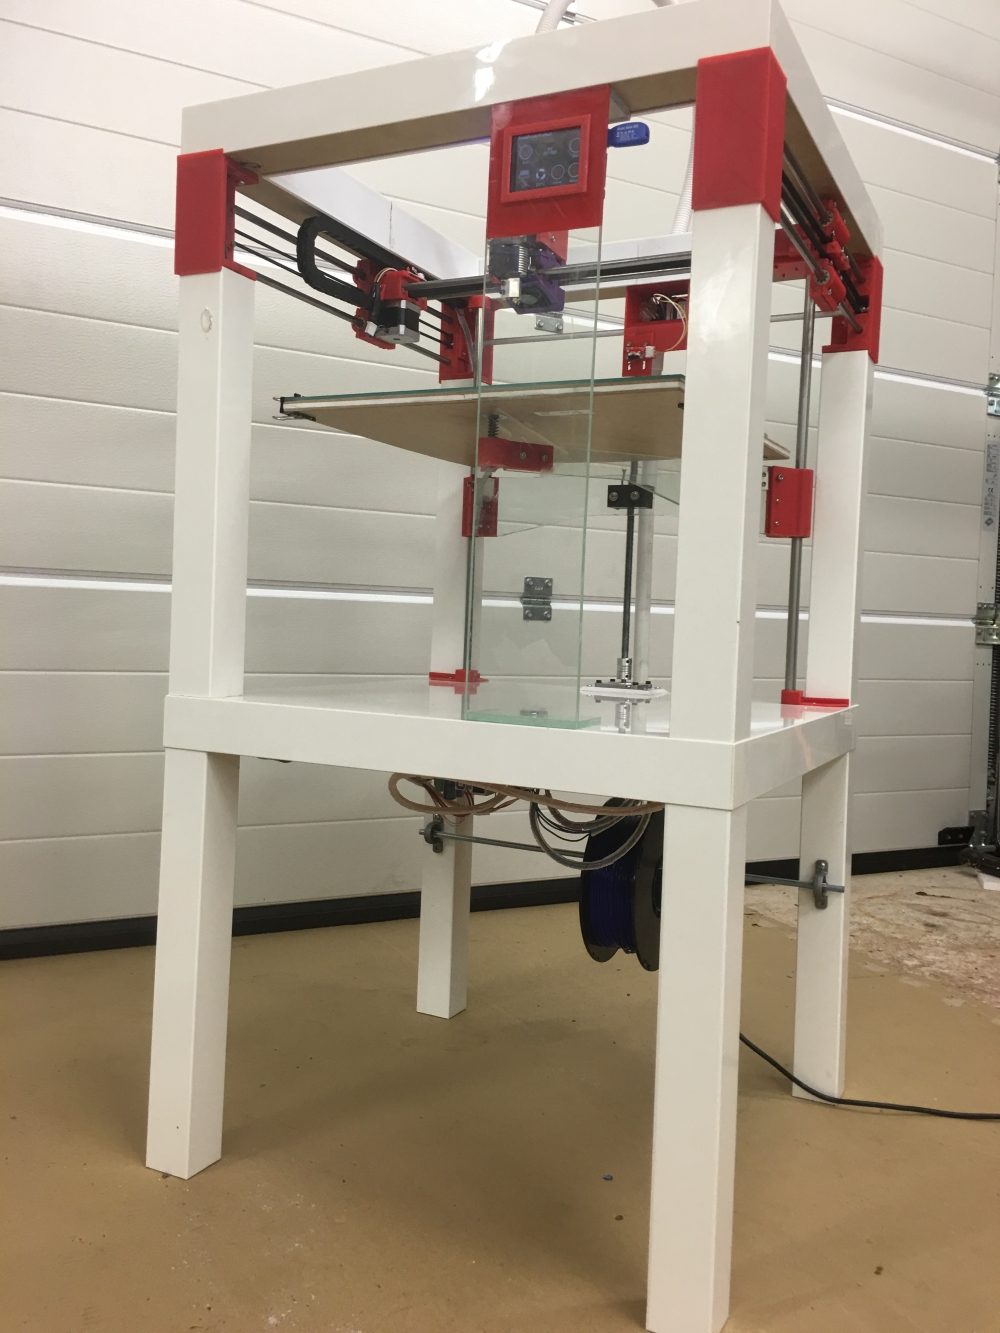 Just Finished A Large Build Printer Using Ikea Lack Tables 3d